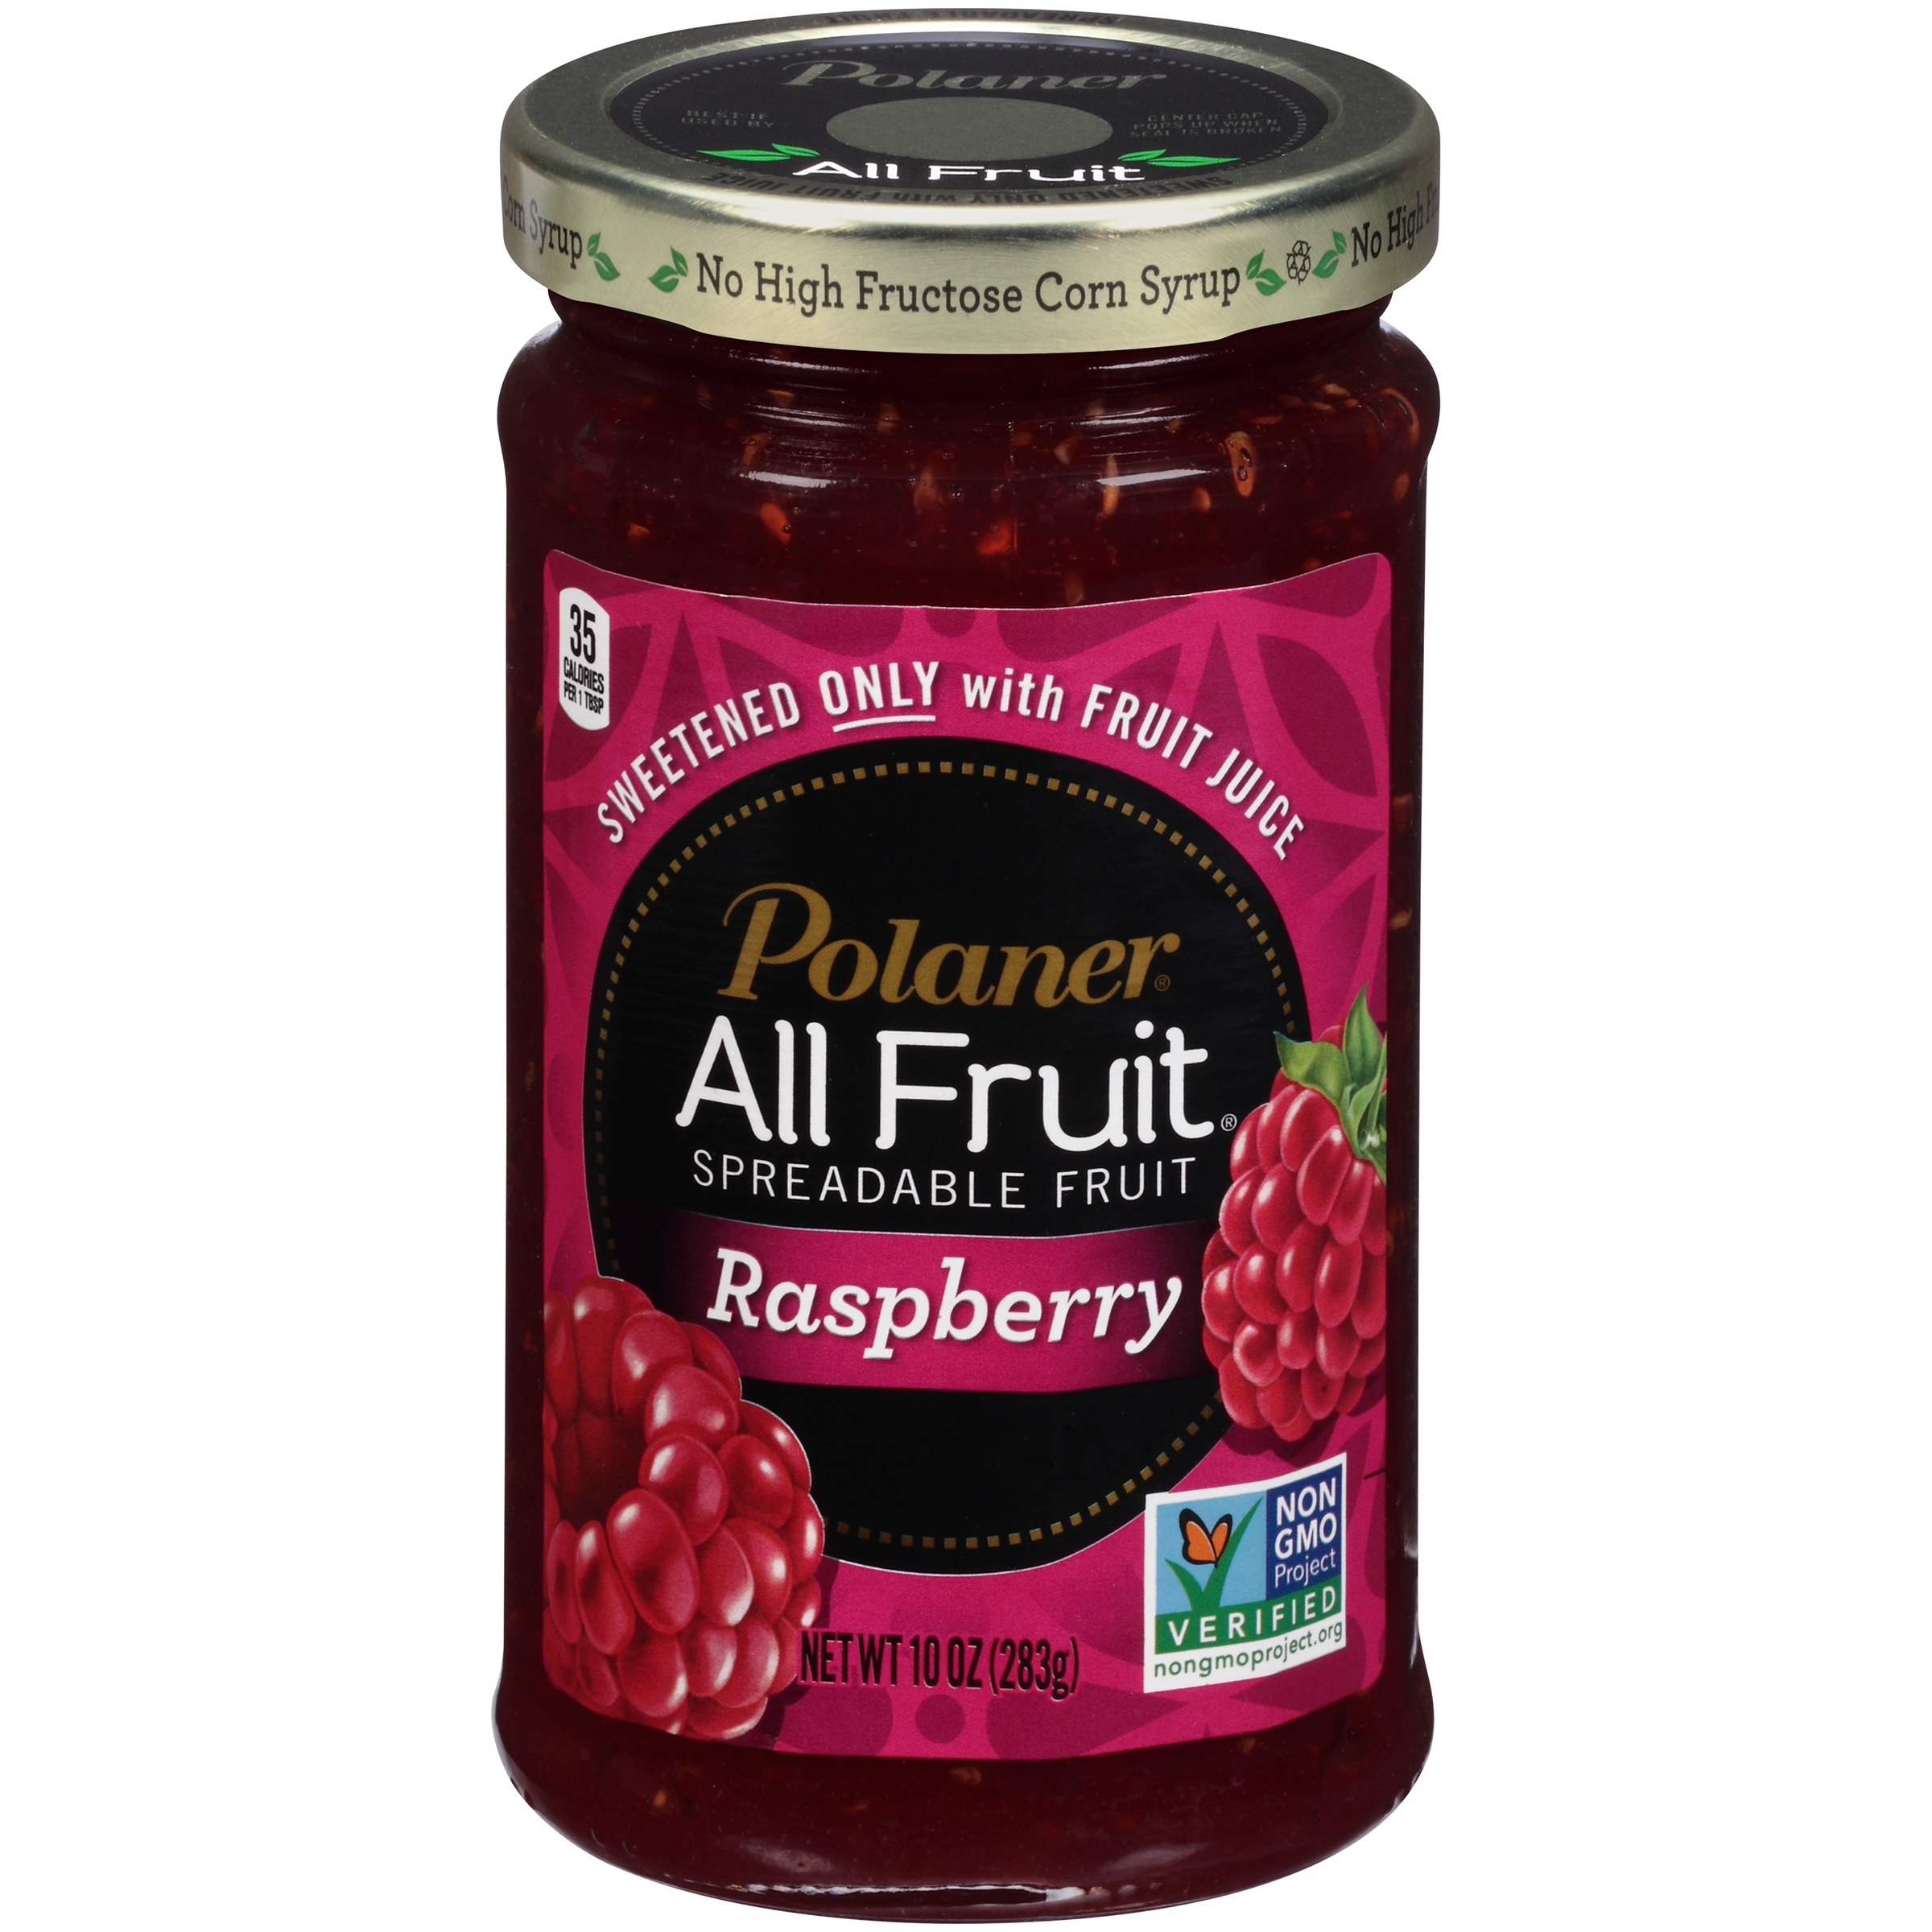 Polaner® All Fruit® Raspberry Spreadable Fruit 10 oz. Jar